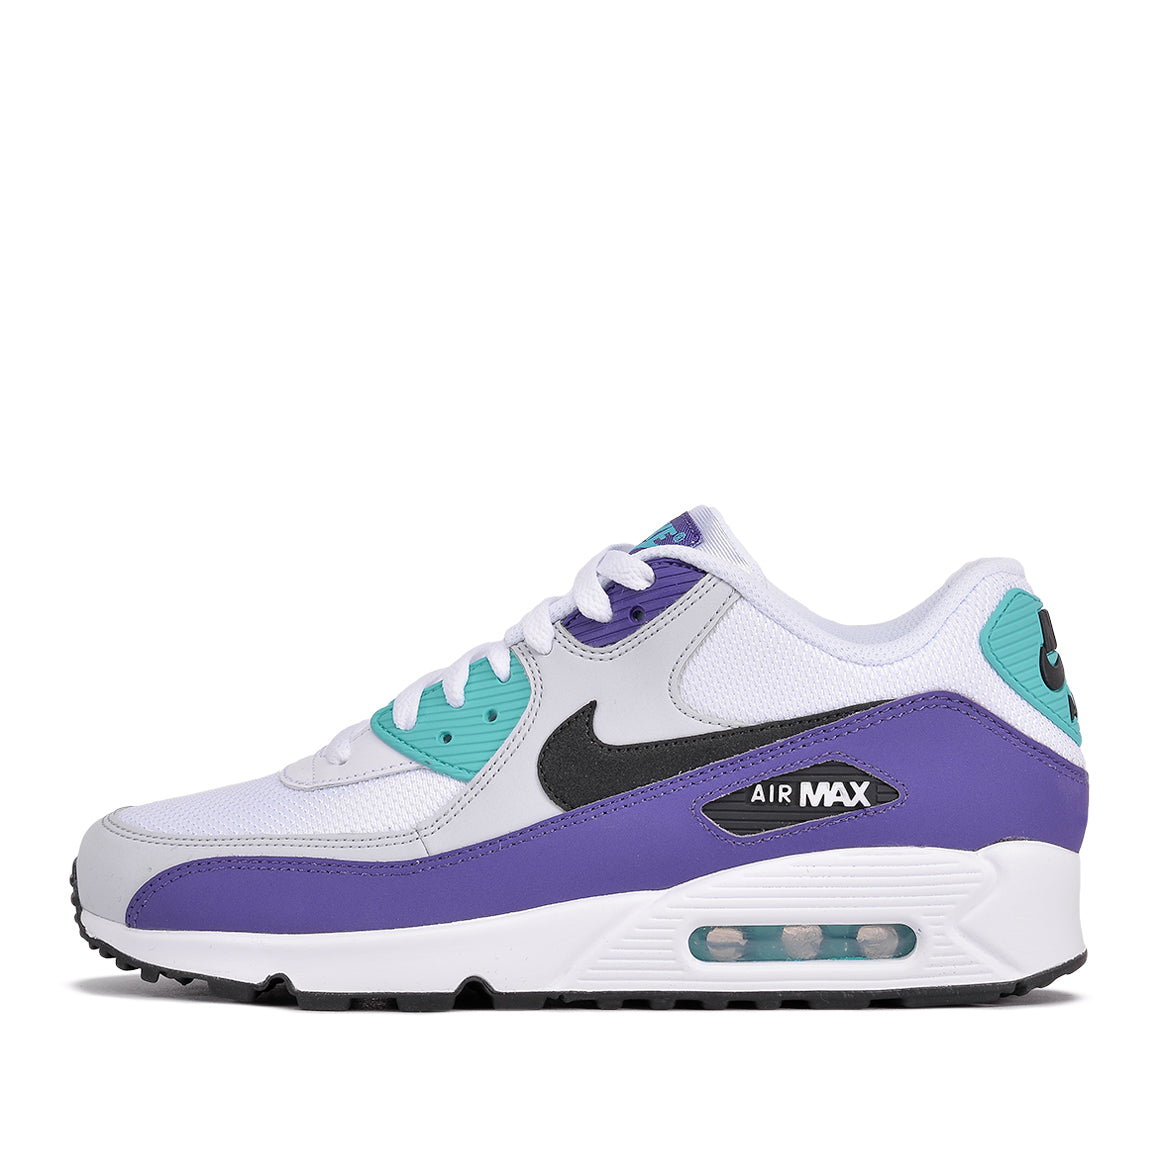 the latest 9f0bd 7df35 AIR MAX 90 ESSENTIAL - WHITE   BLACK   HYPER JADE   City Blue